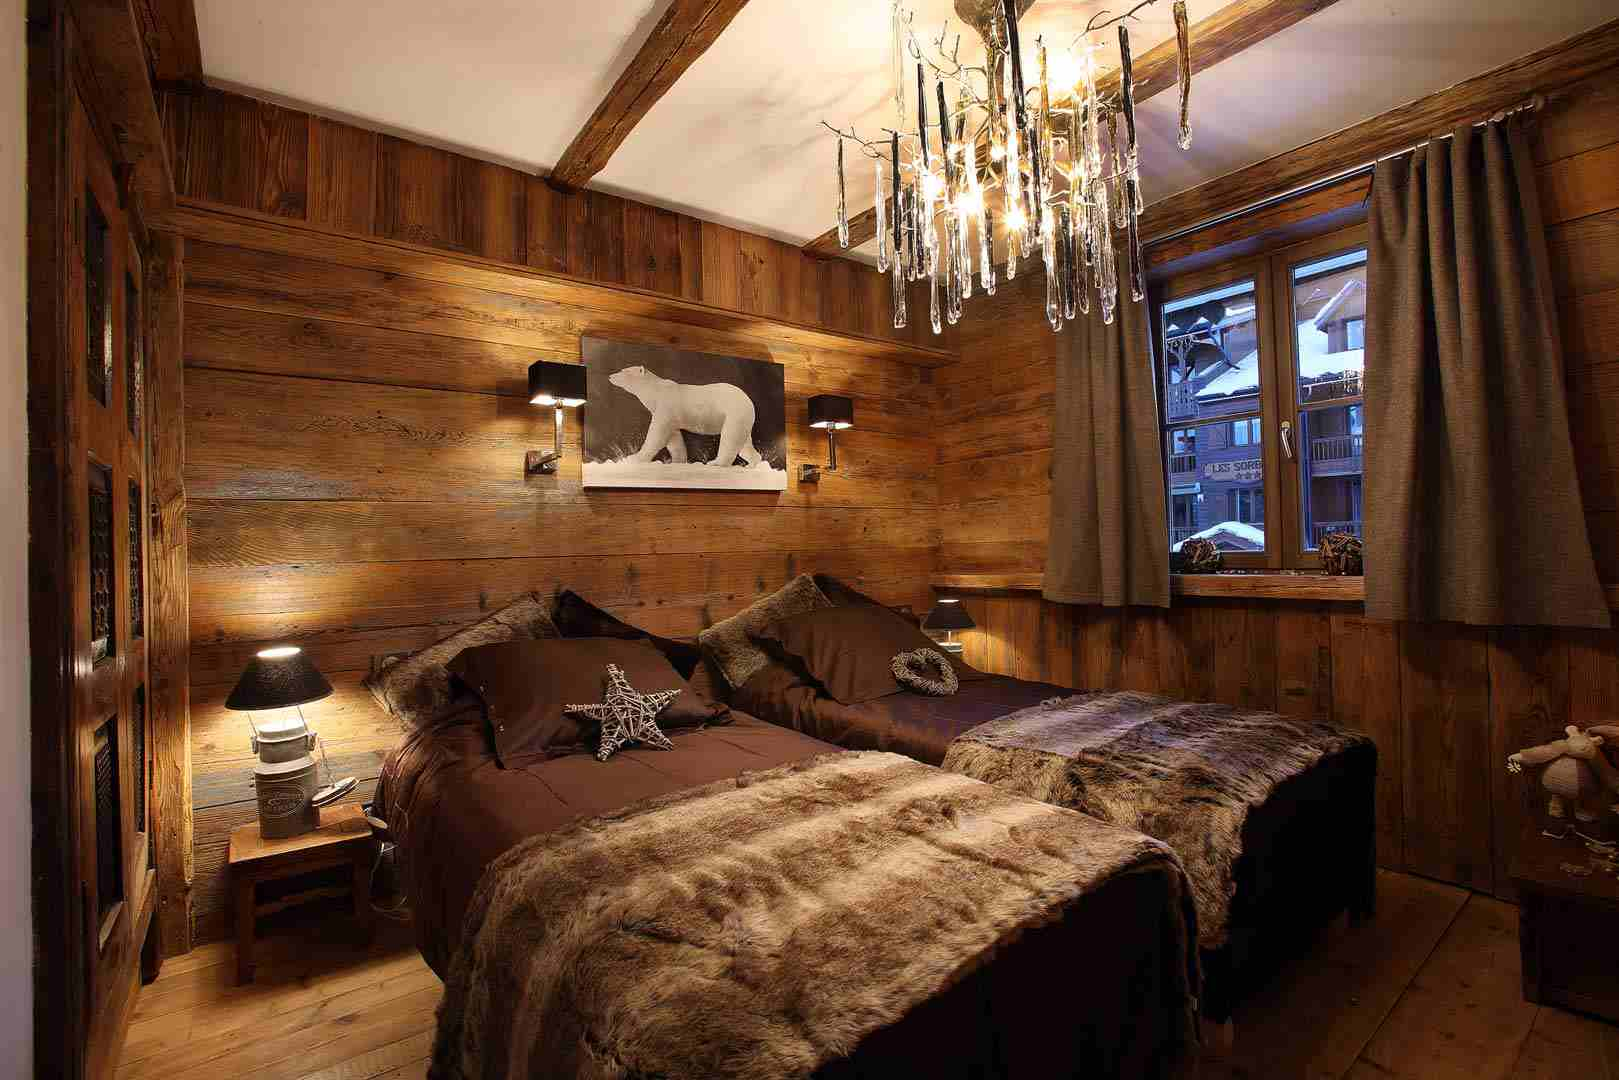 Decoration mur interieur bois l 39 habis for Decoration de chalet